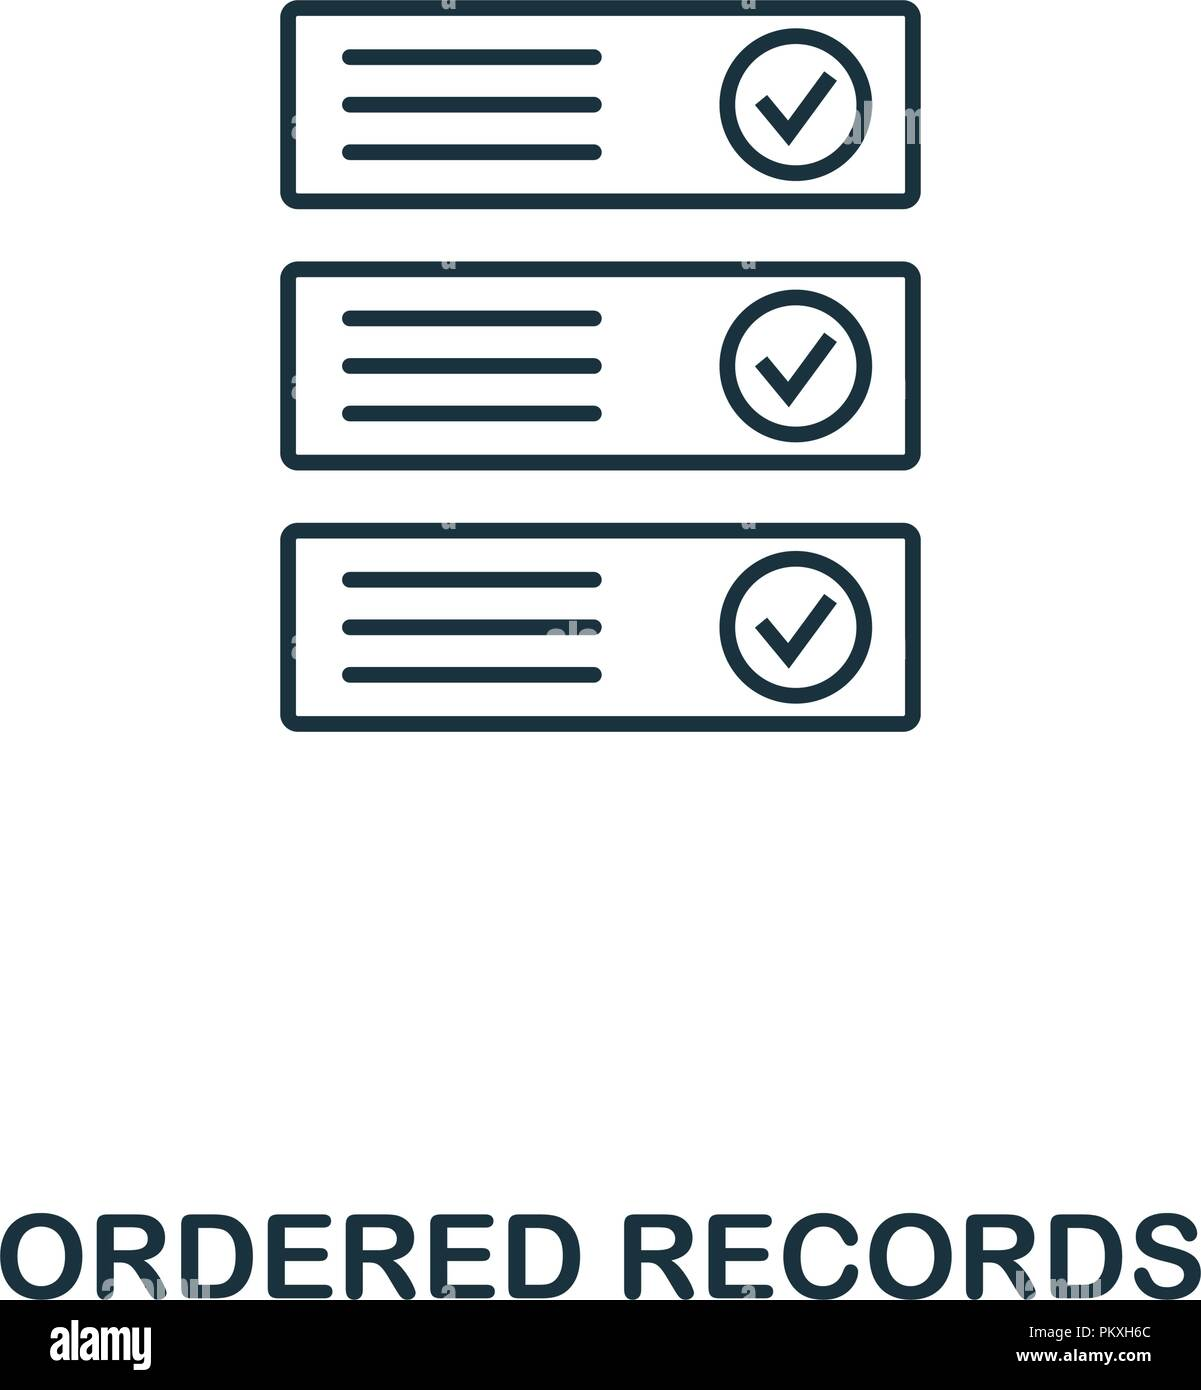 Ordered Records outline icon. Monochrome style design from crypto currency collection. UI. Pixel perfect simple pictogram outline ordered records icon - Stock Vector